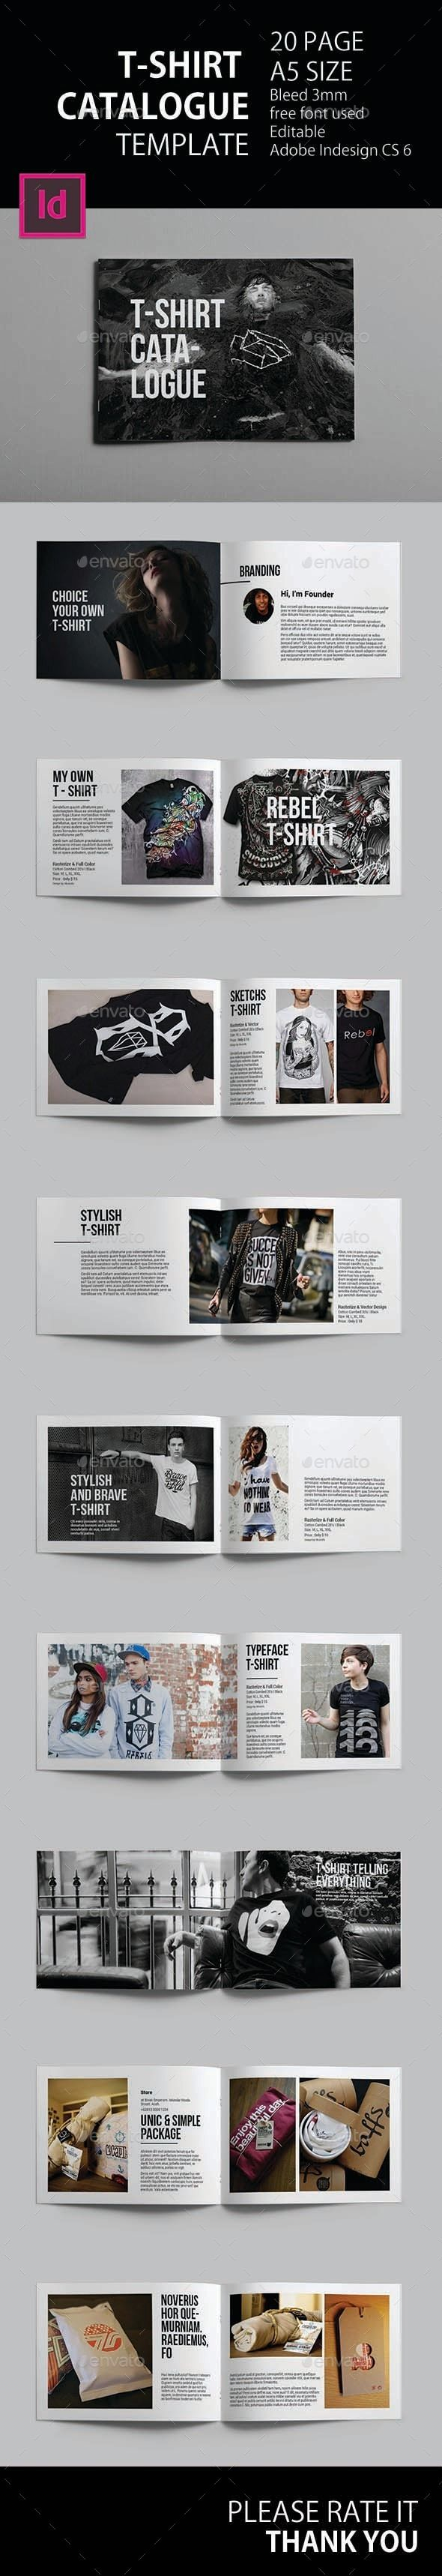 t shirt catalogue template t shirt catalogue template designed